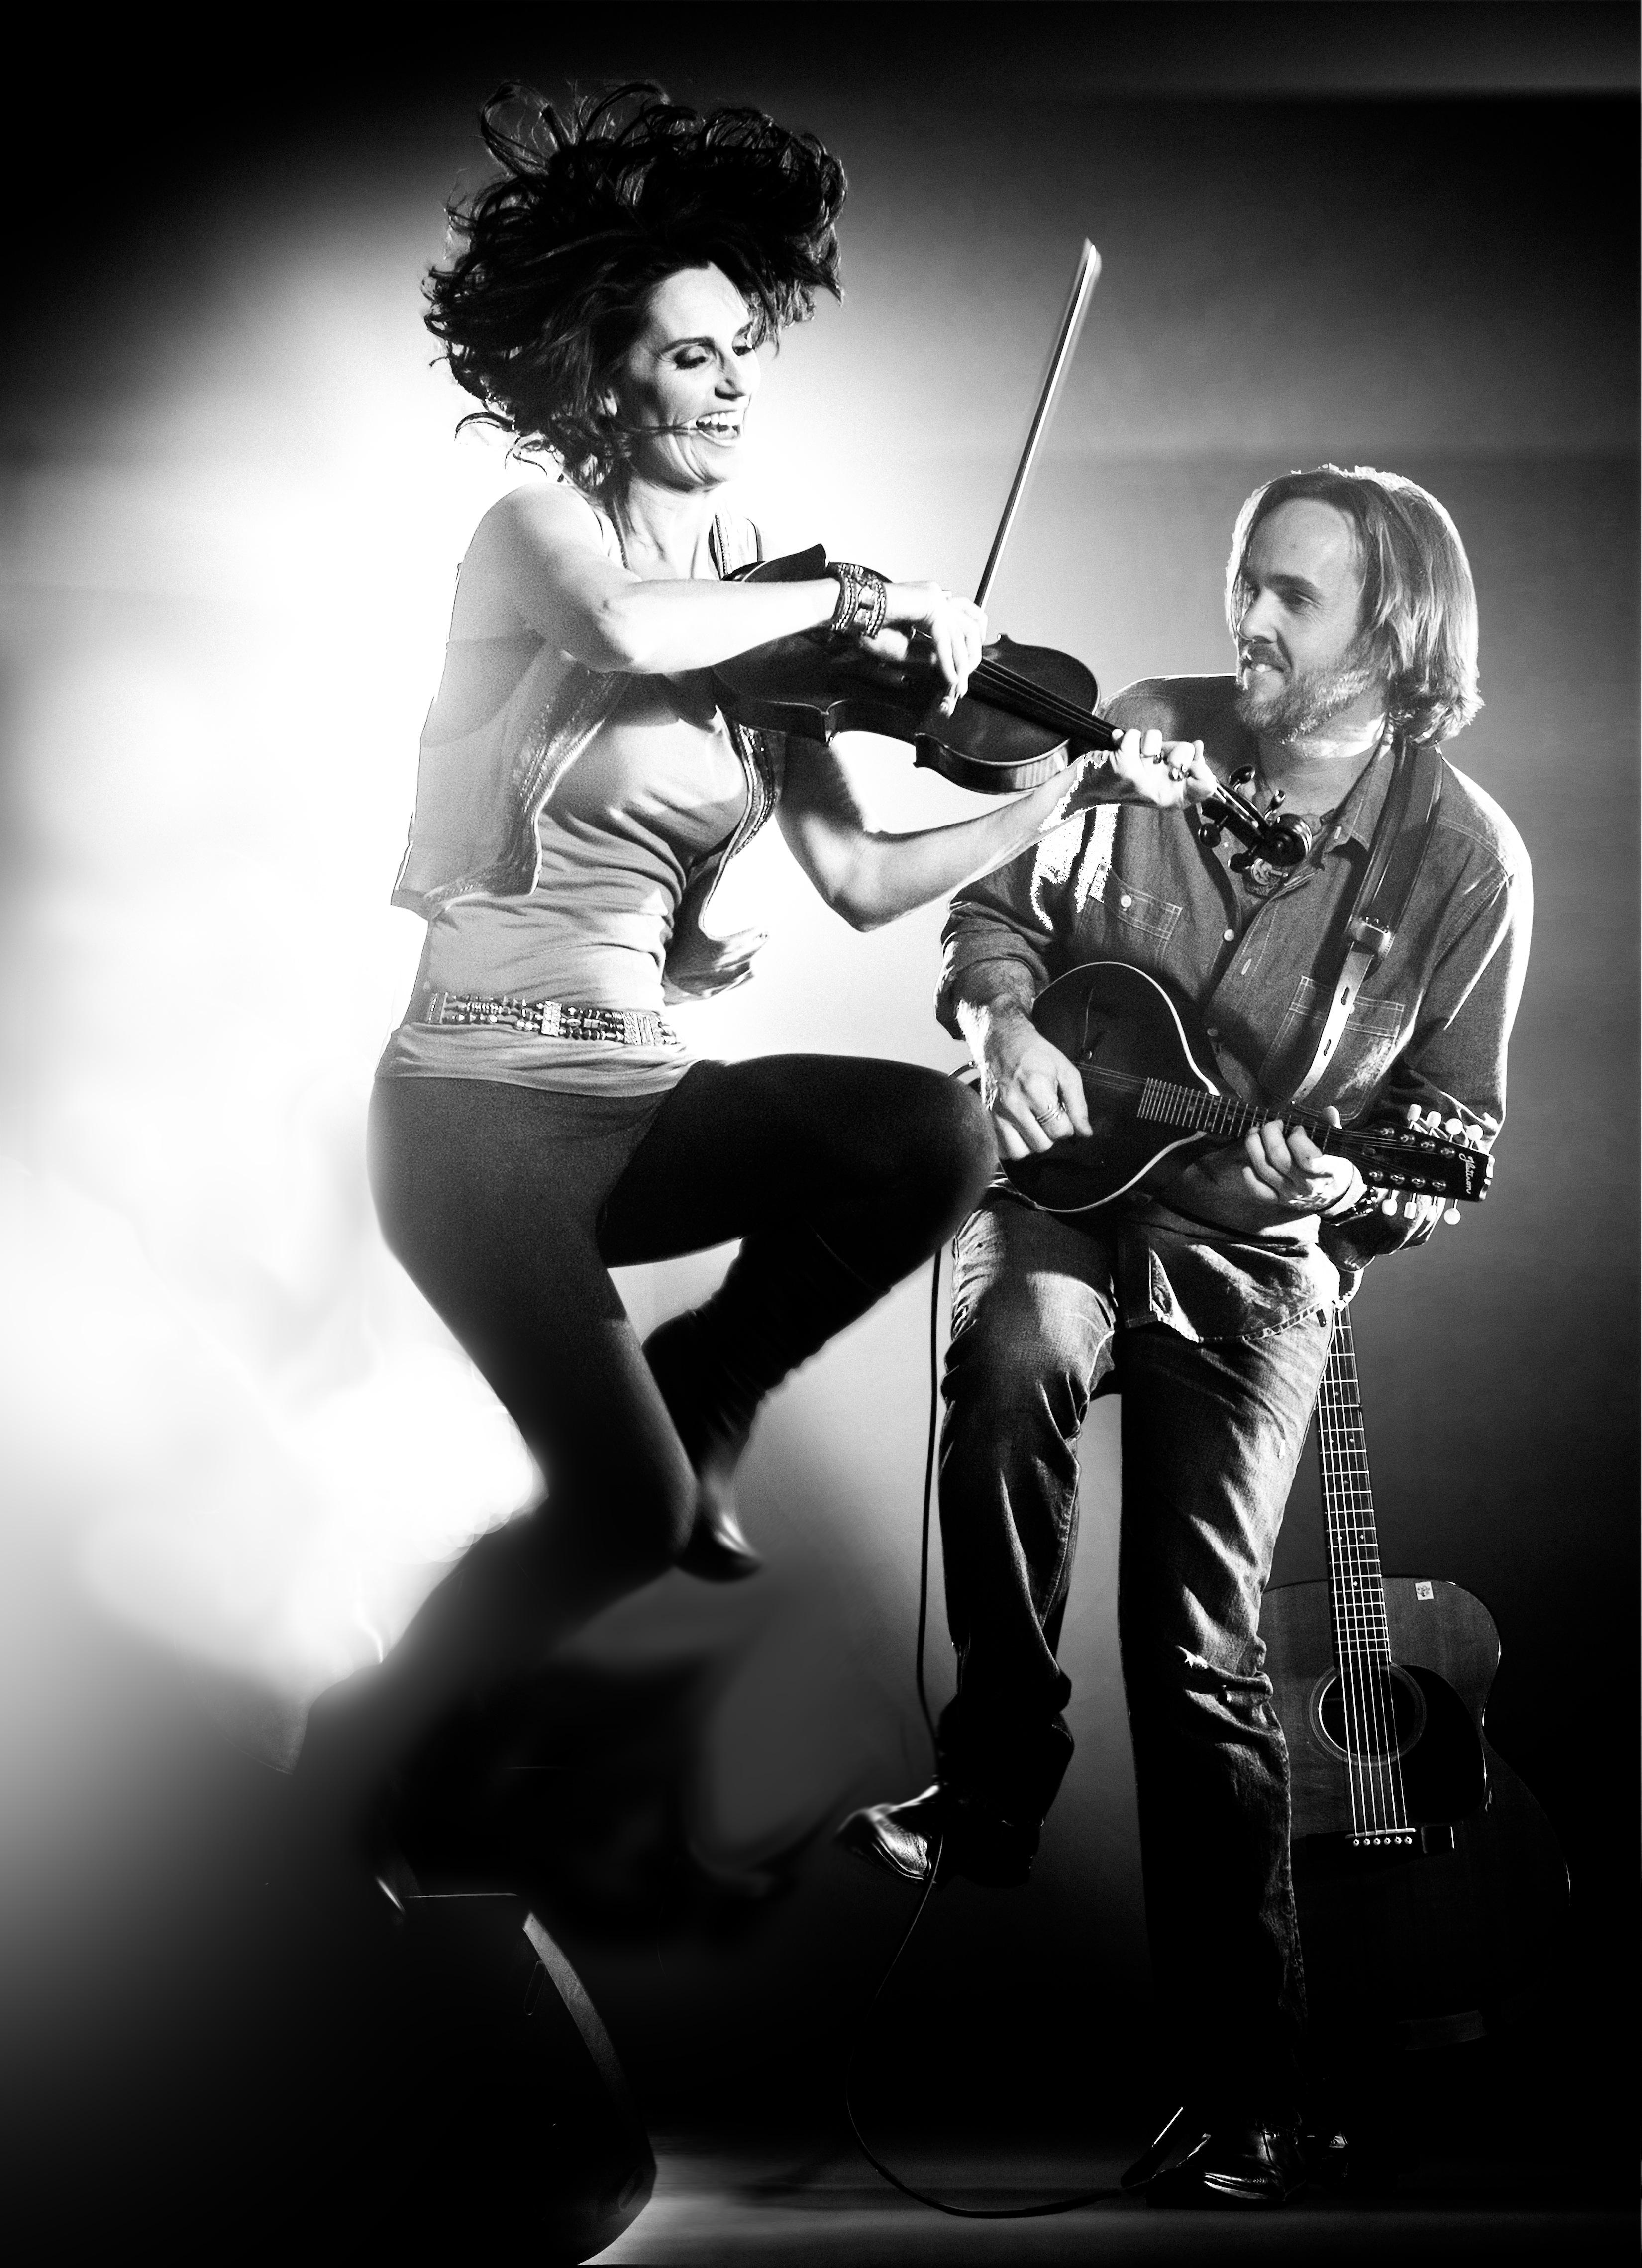 Woman plays fiddle, man plays guitar.